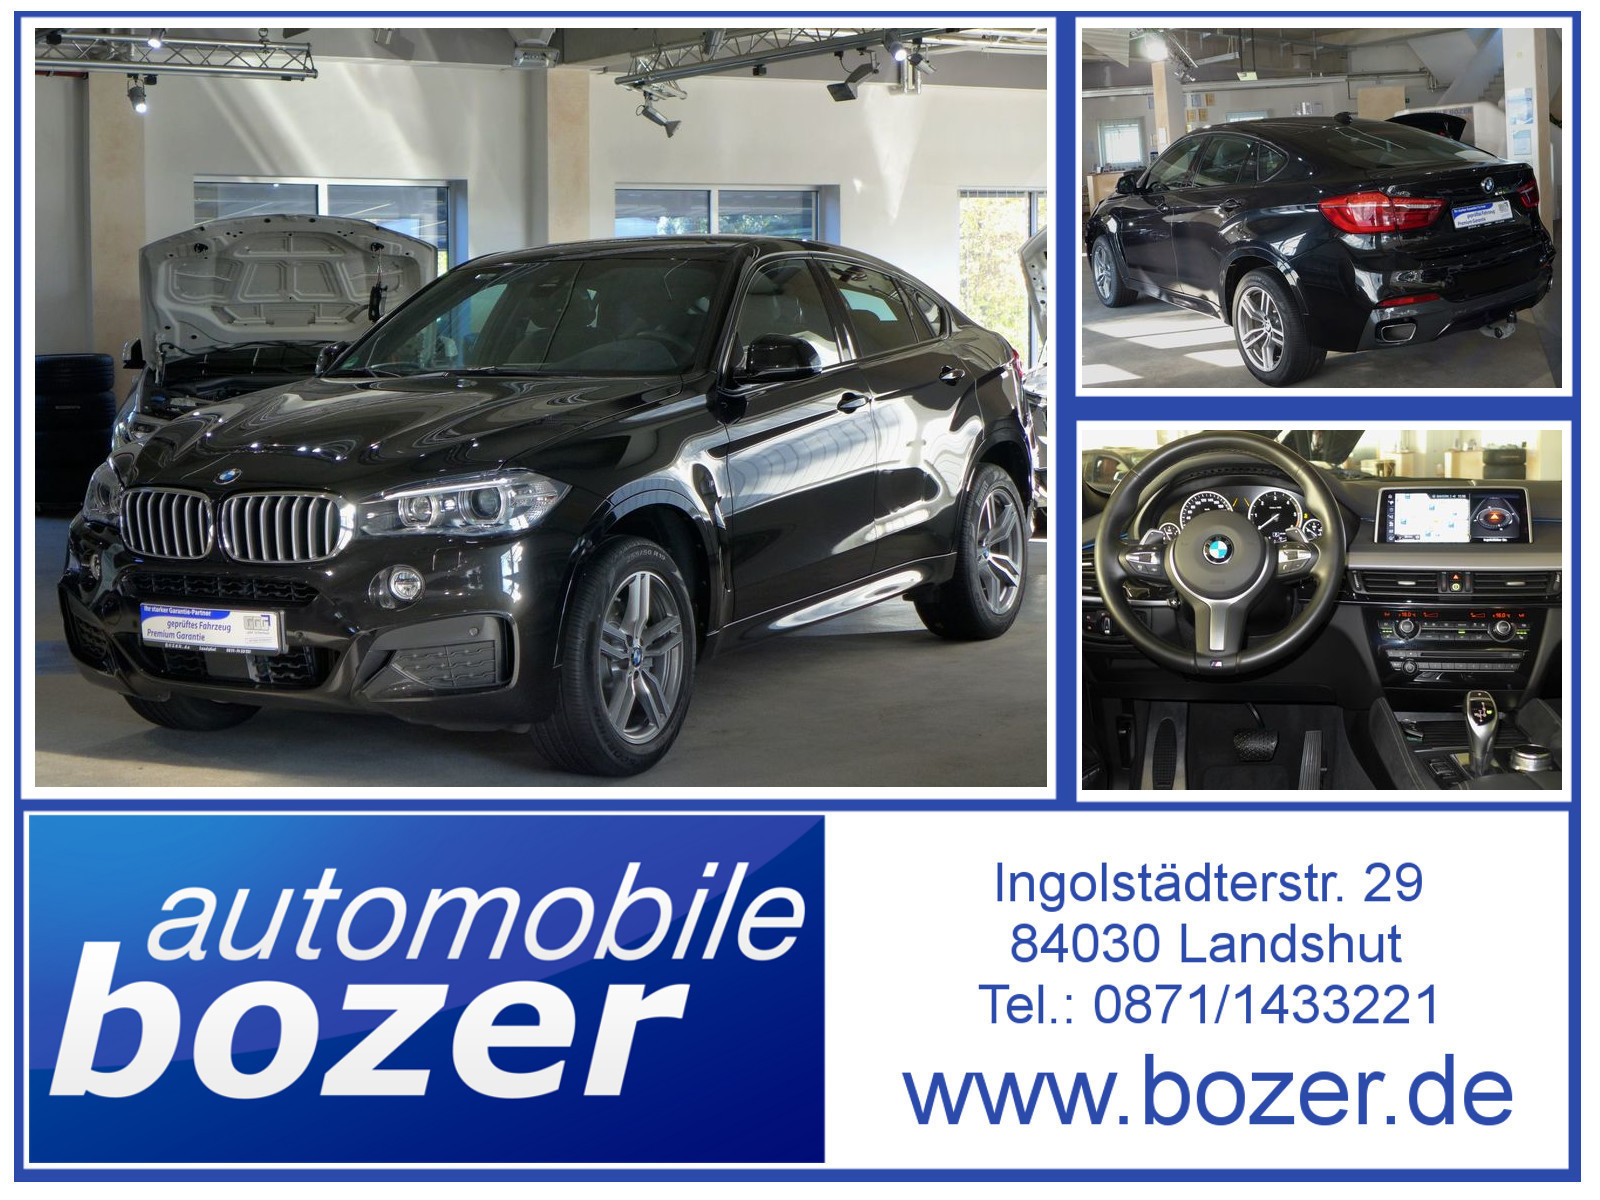 BMW_X6_picture_1_01.jpg